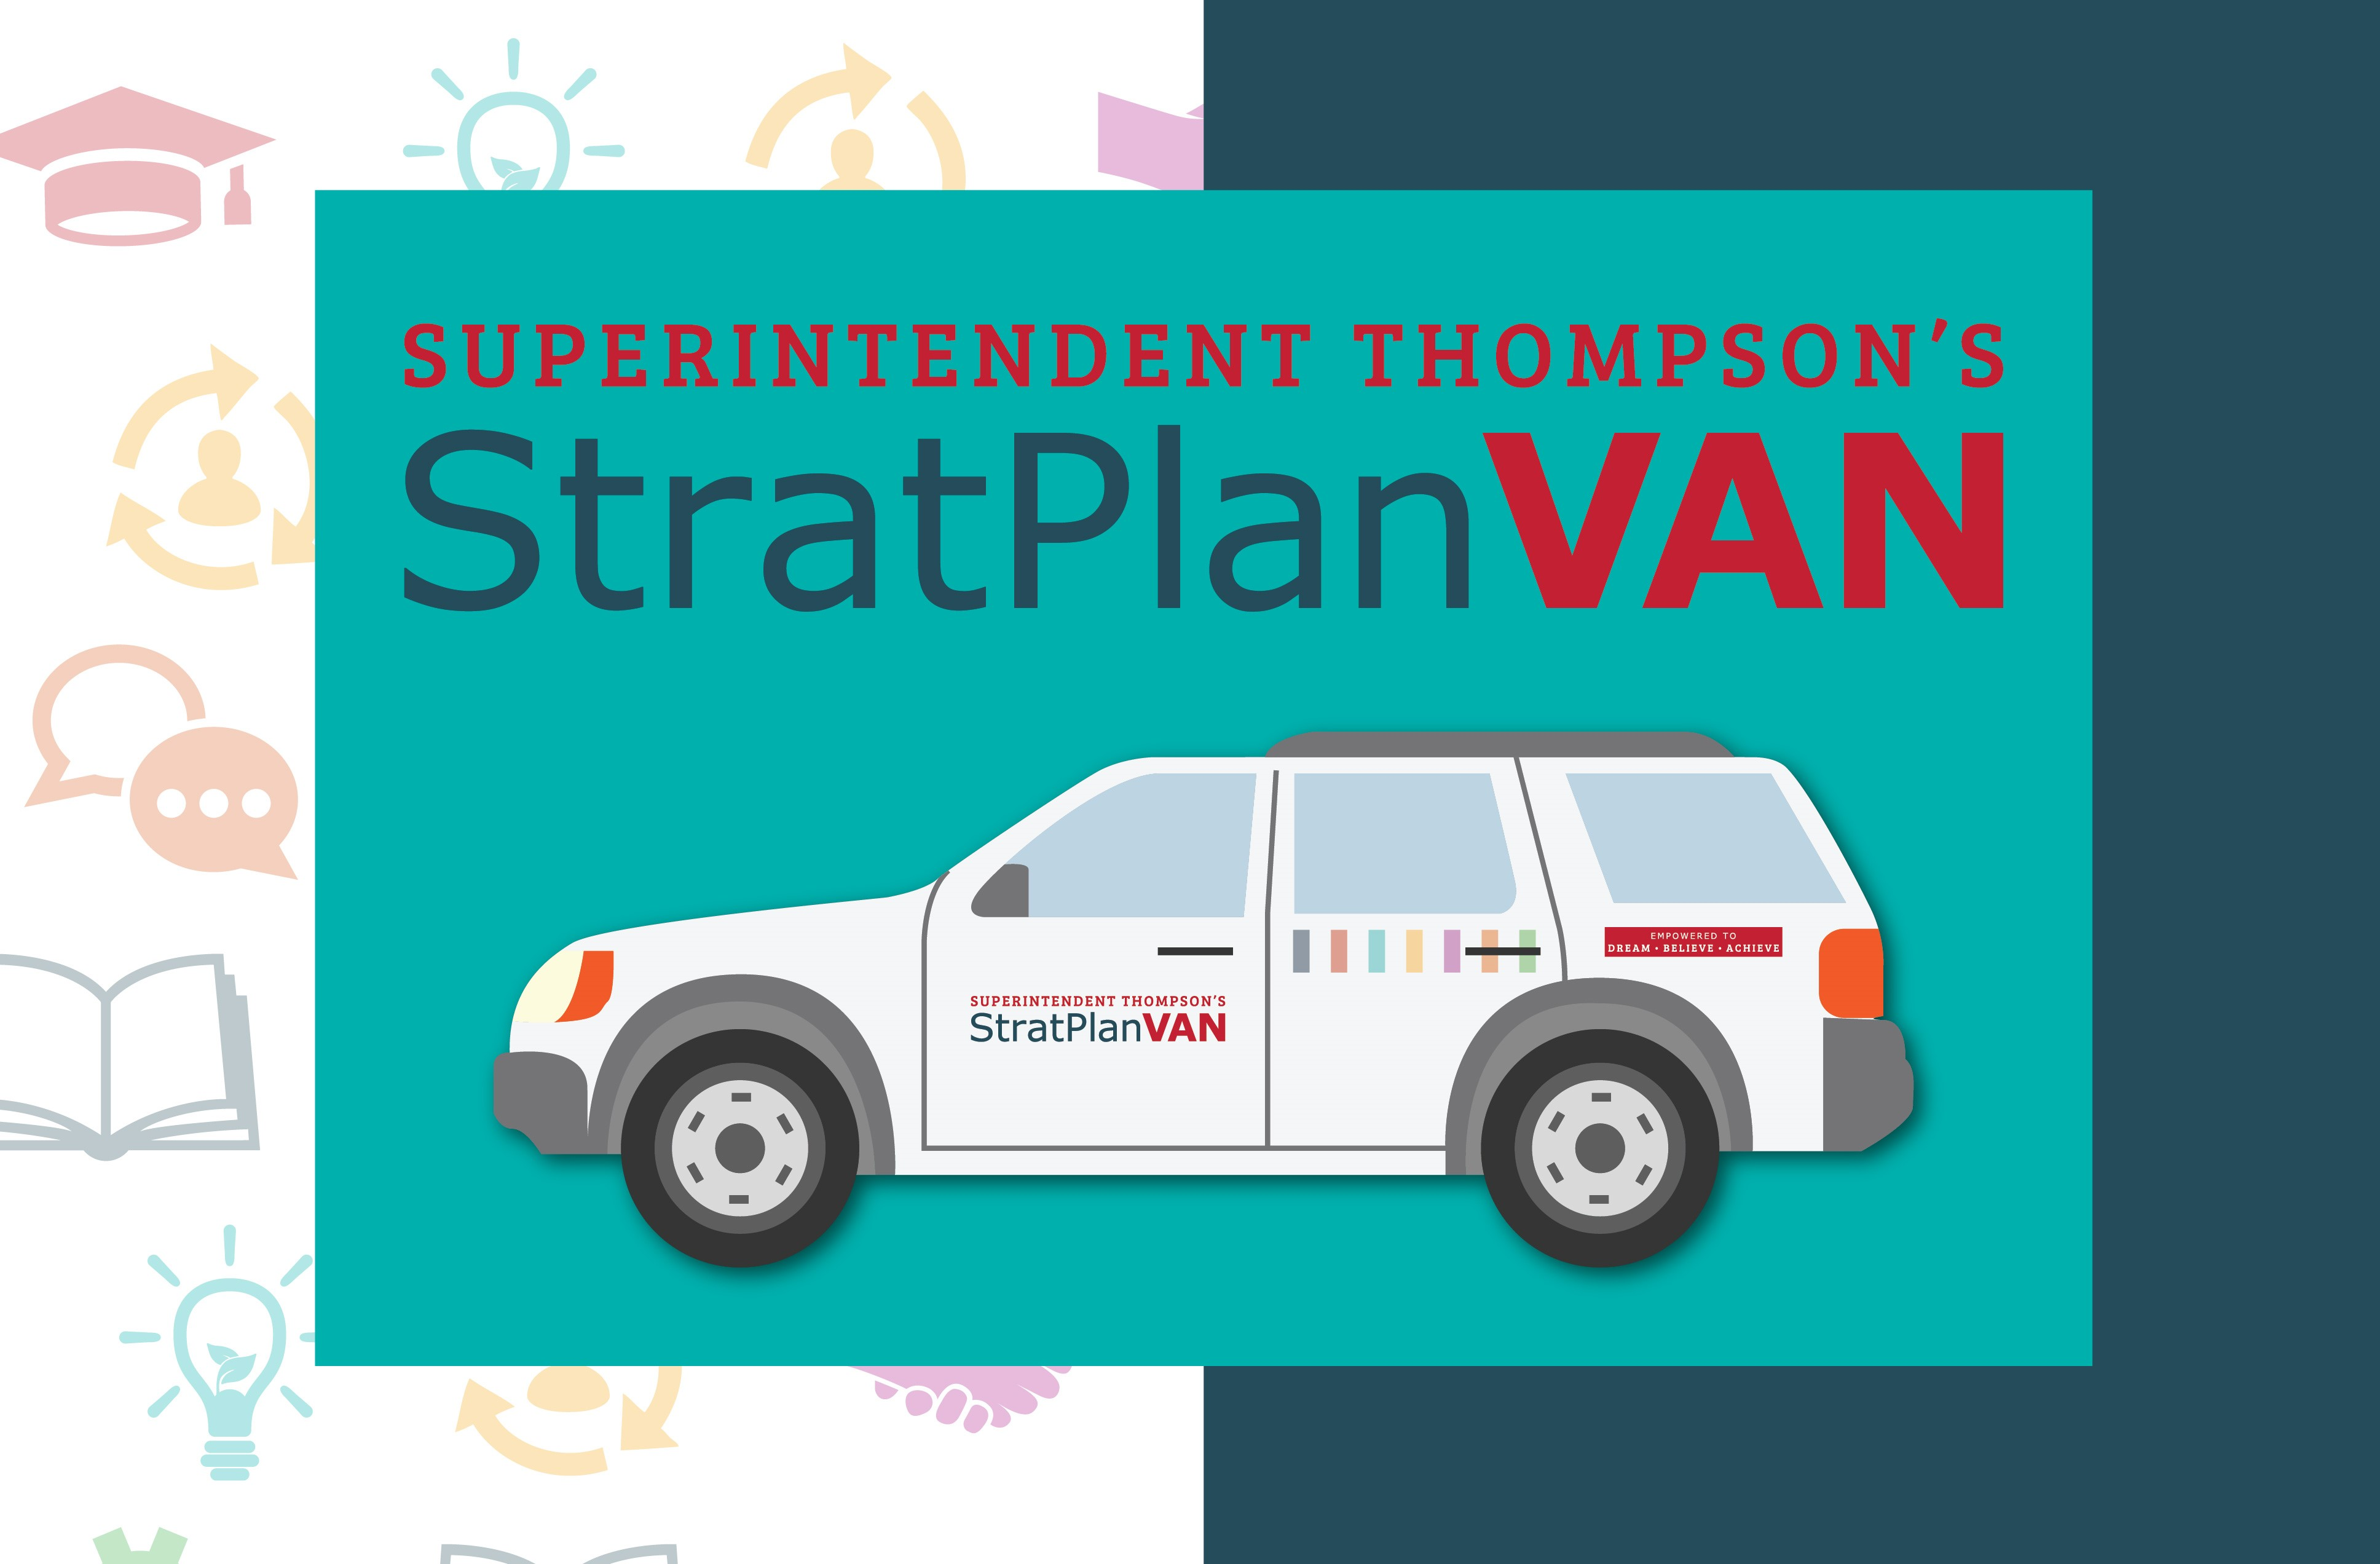 Dr. Thompson's Strat Plan Van makes its first visit